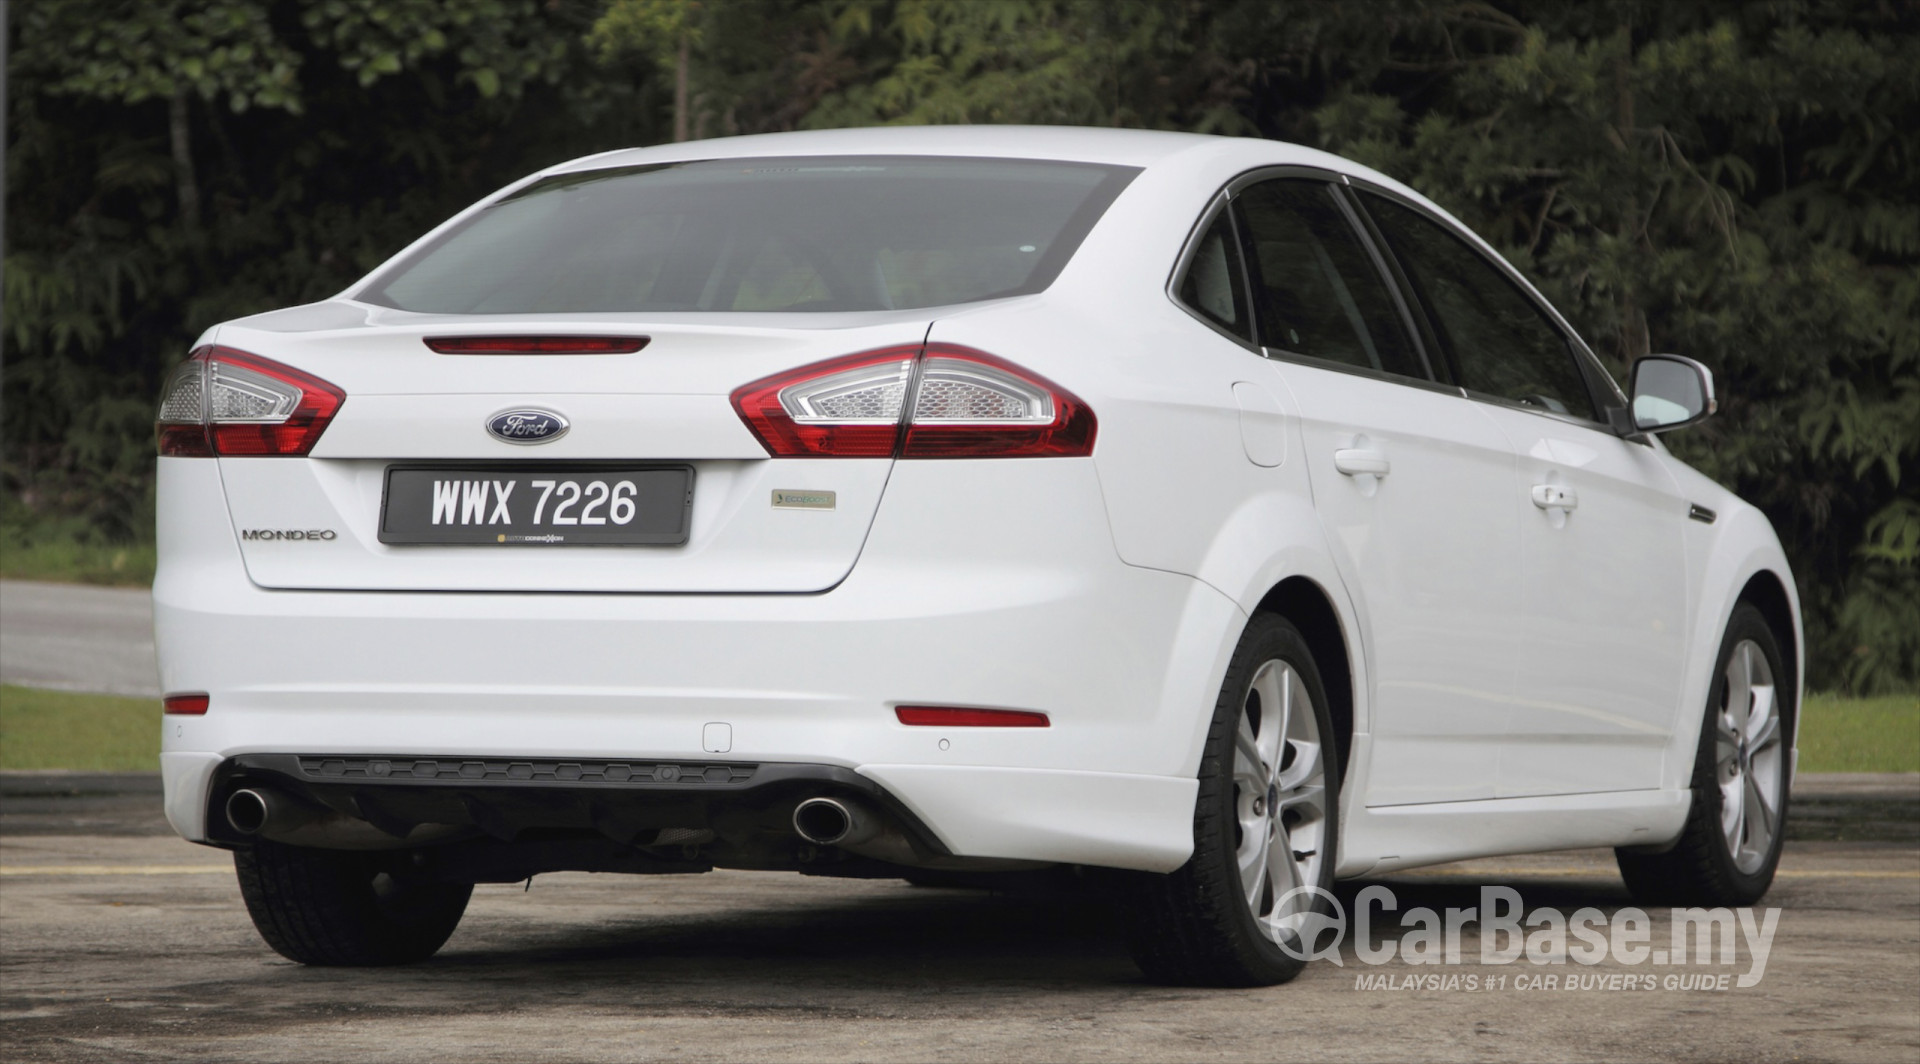 ford mondeo mk4 facelift cd345 2011 exterior image in malaysia reviews specs prices. Black Bedroom Furniture Sets. Home Design Ideas